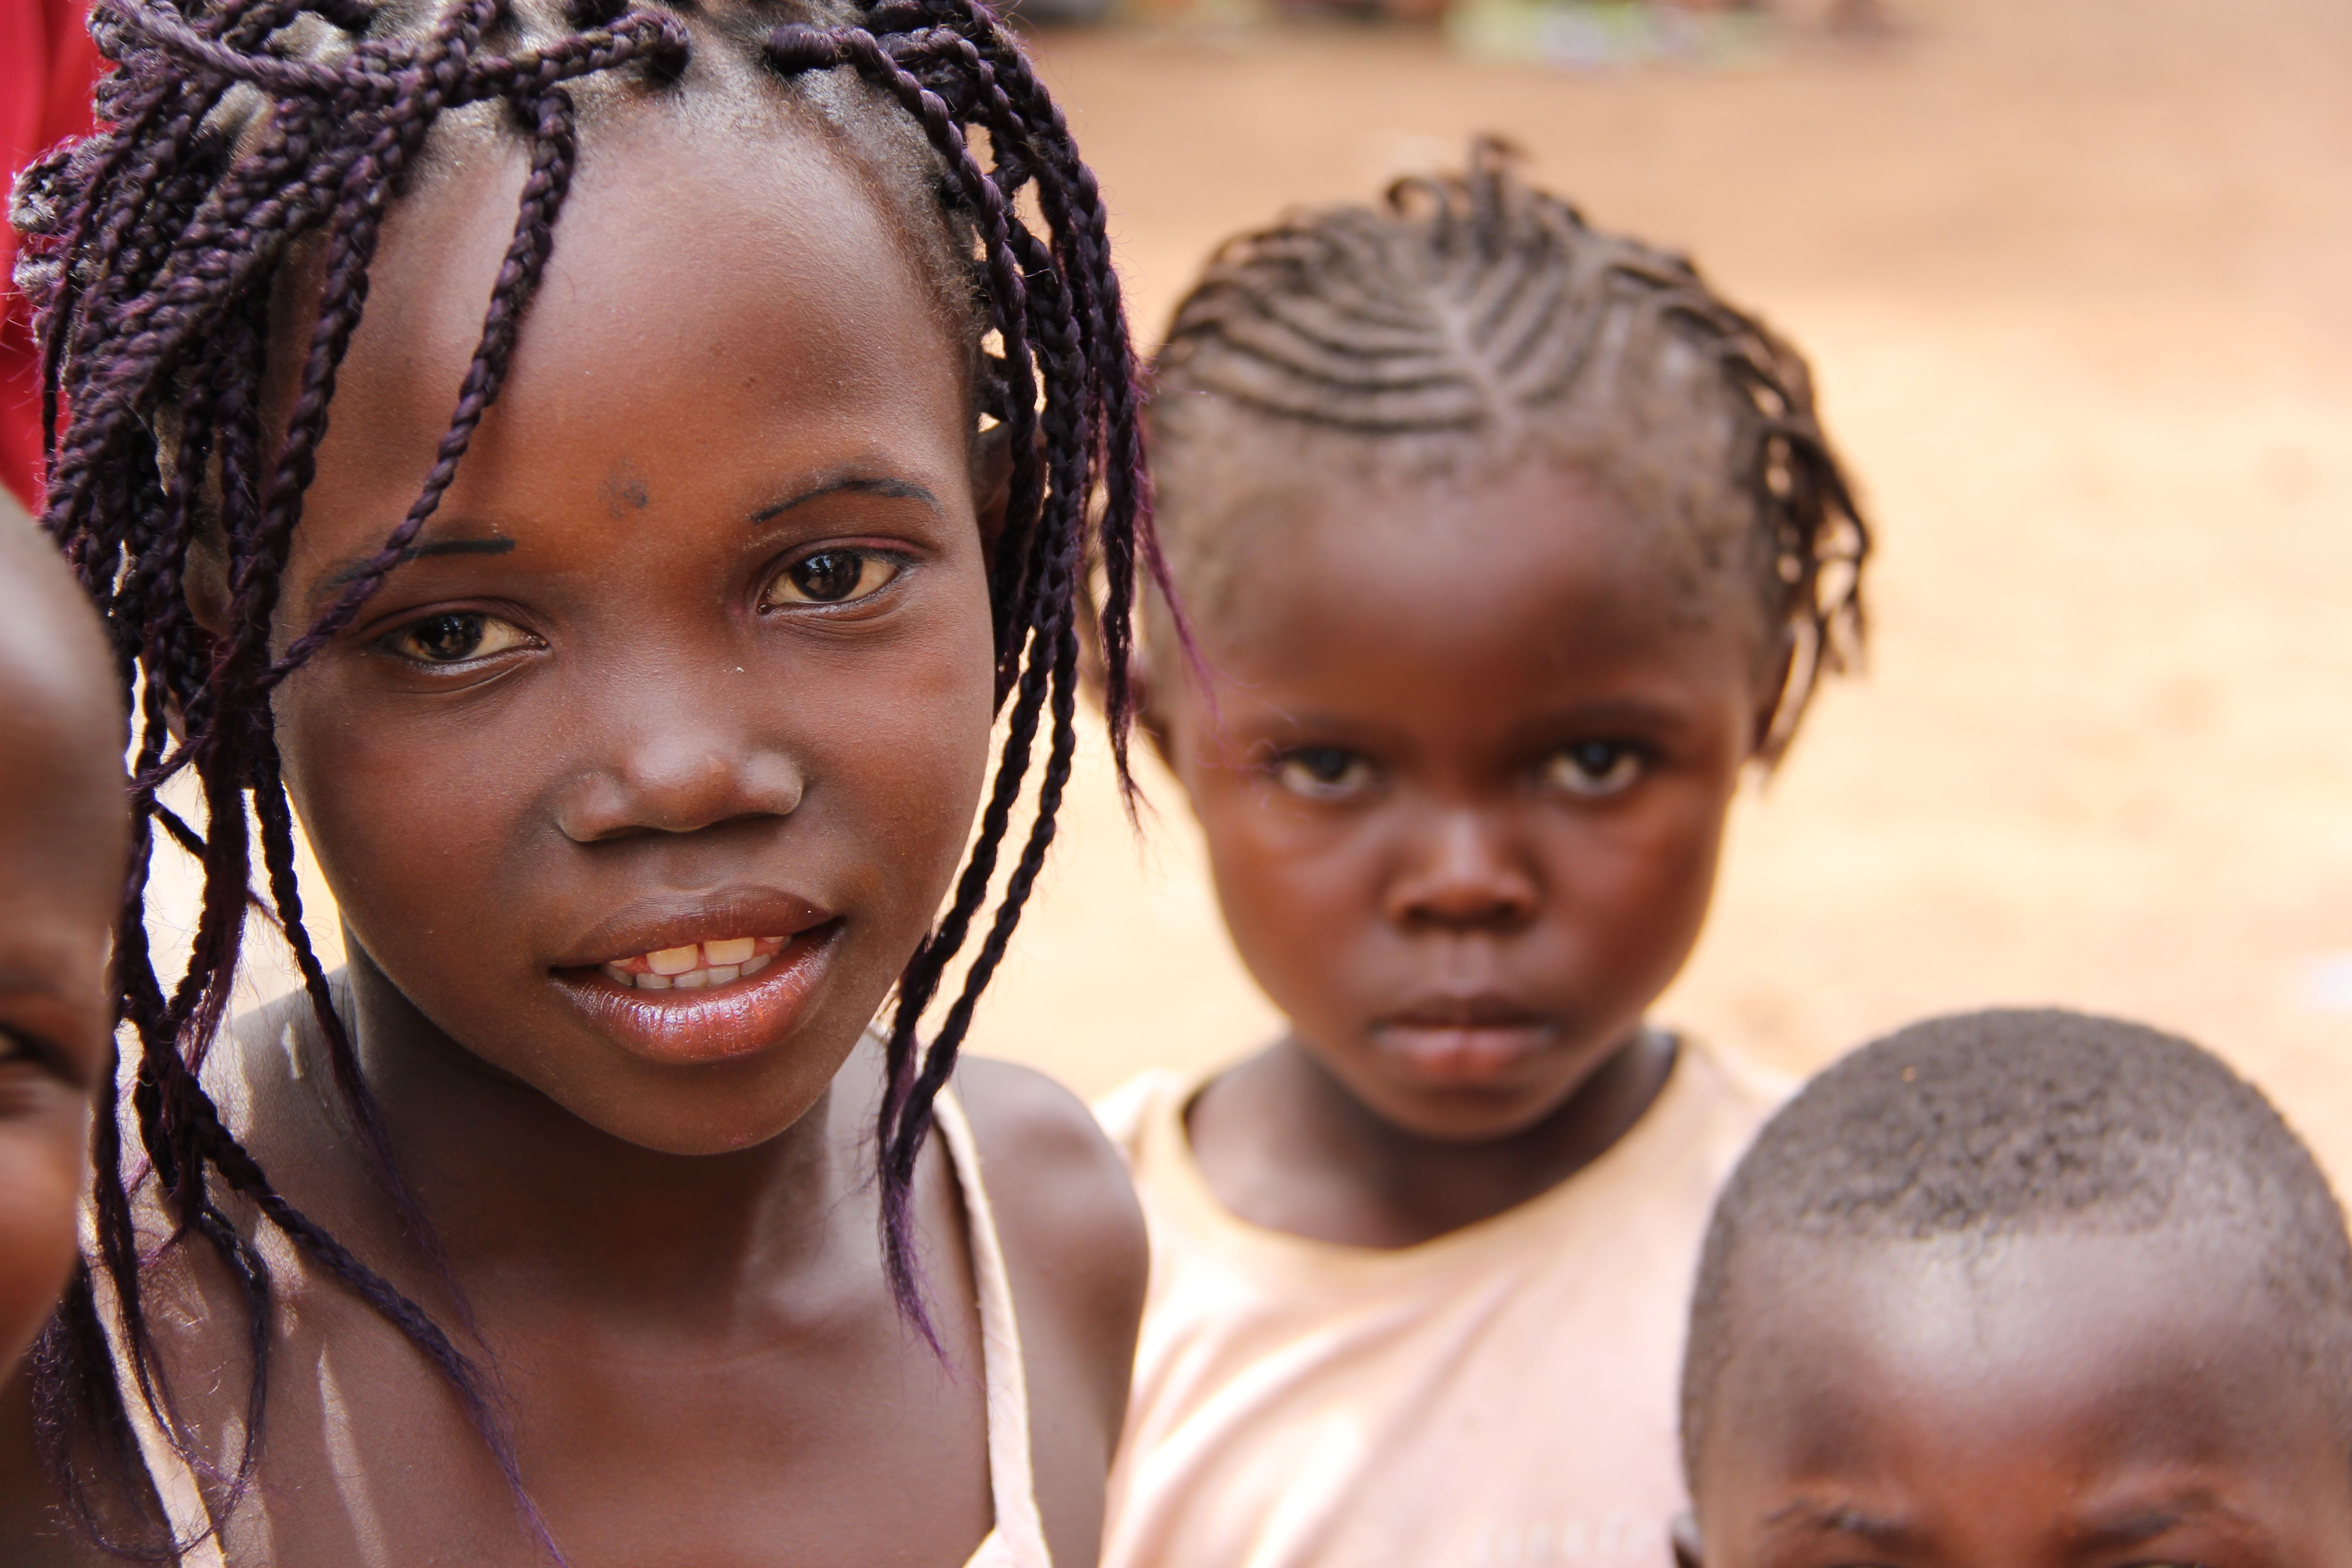 Central Africa. Portraits